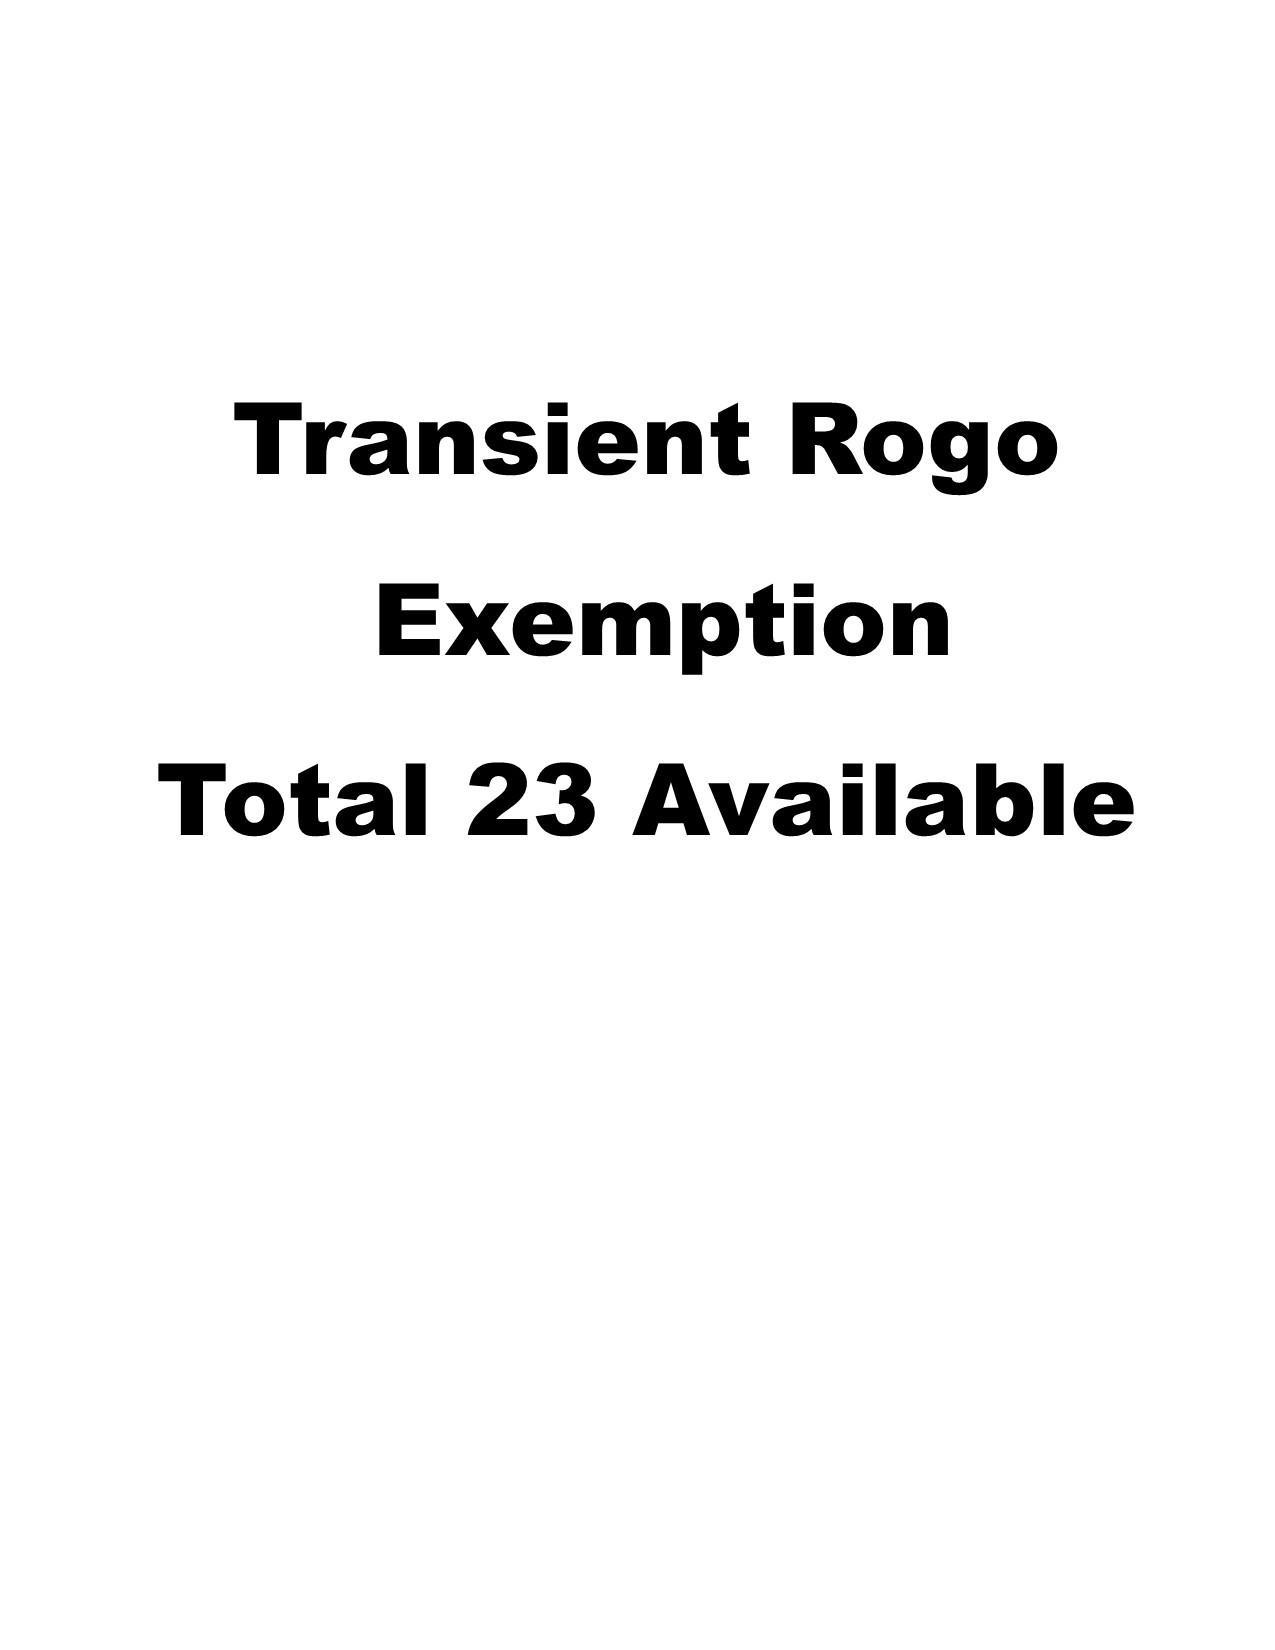 1 Transient Rogo Exemption - Photo 1